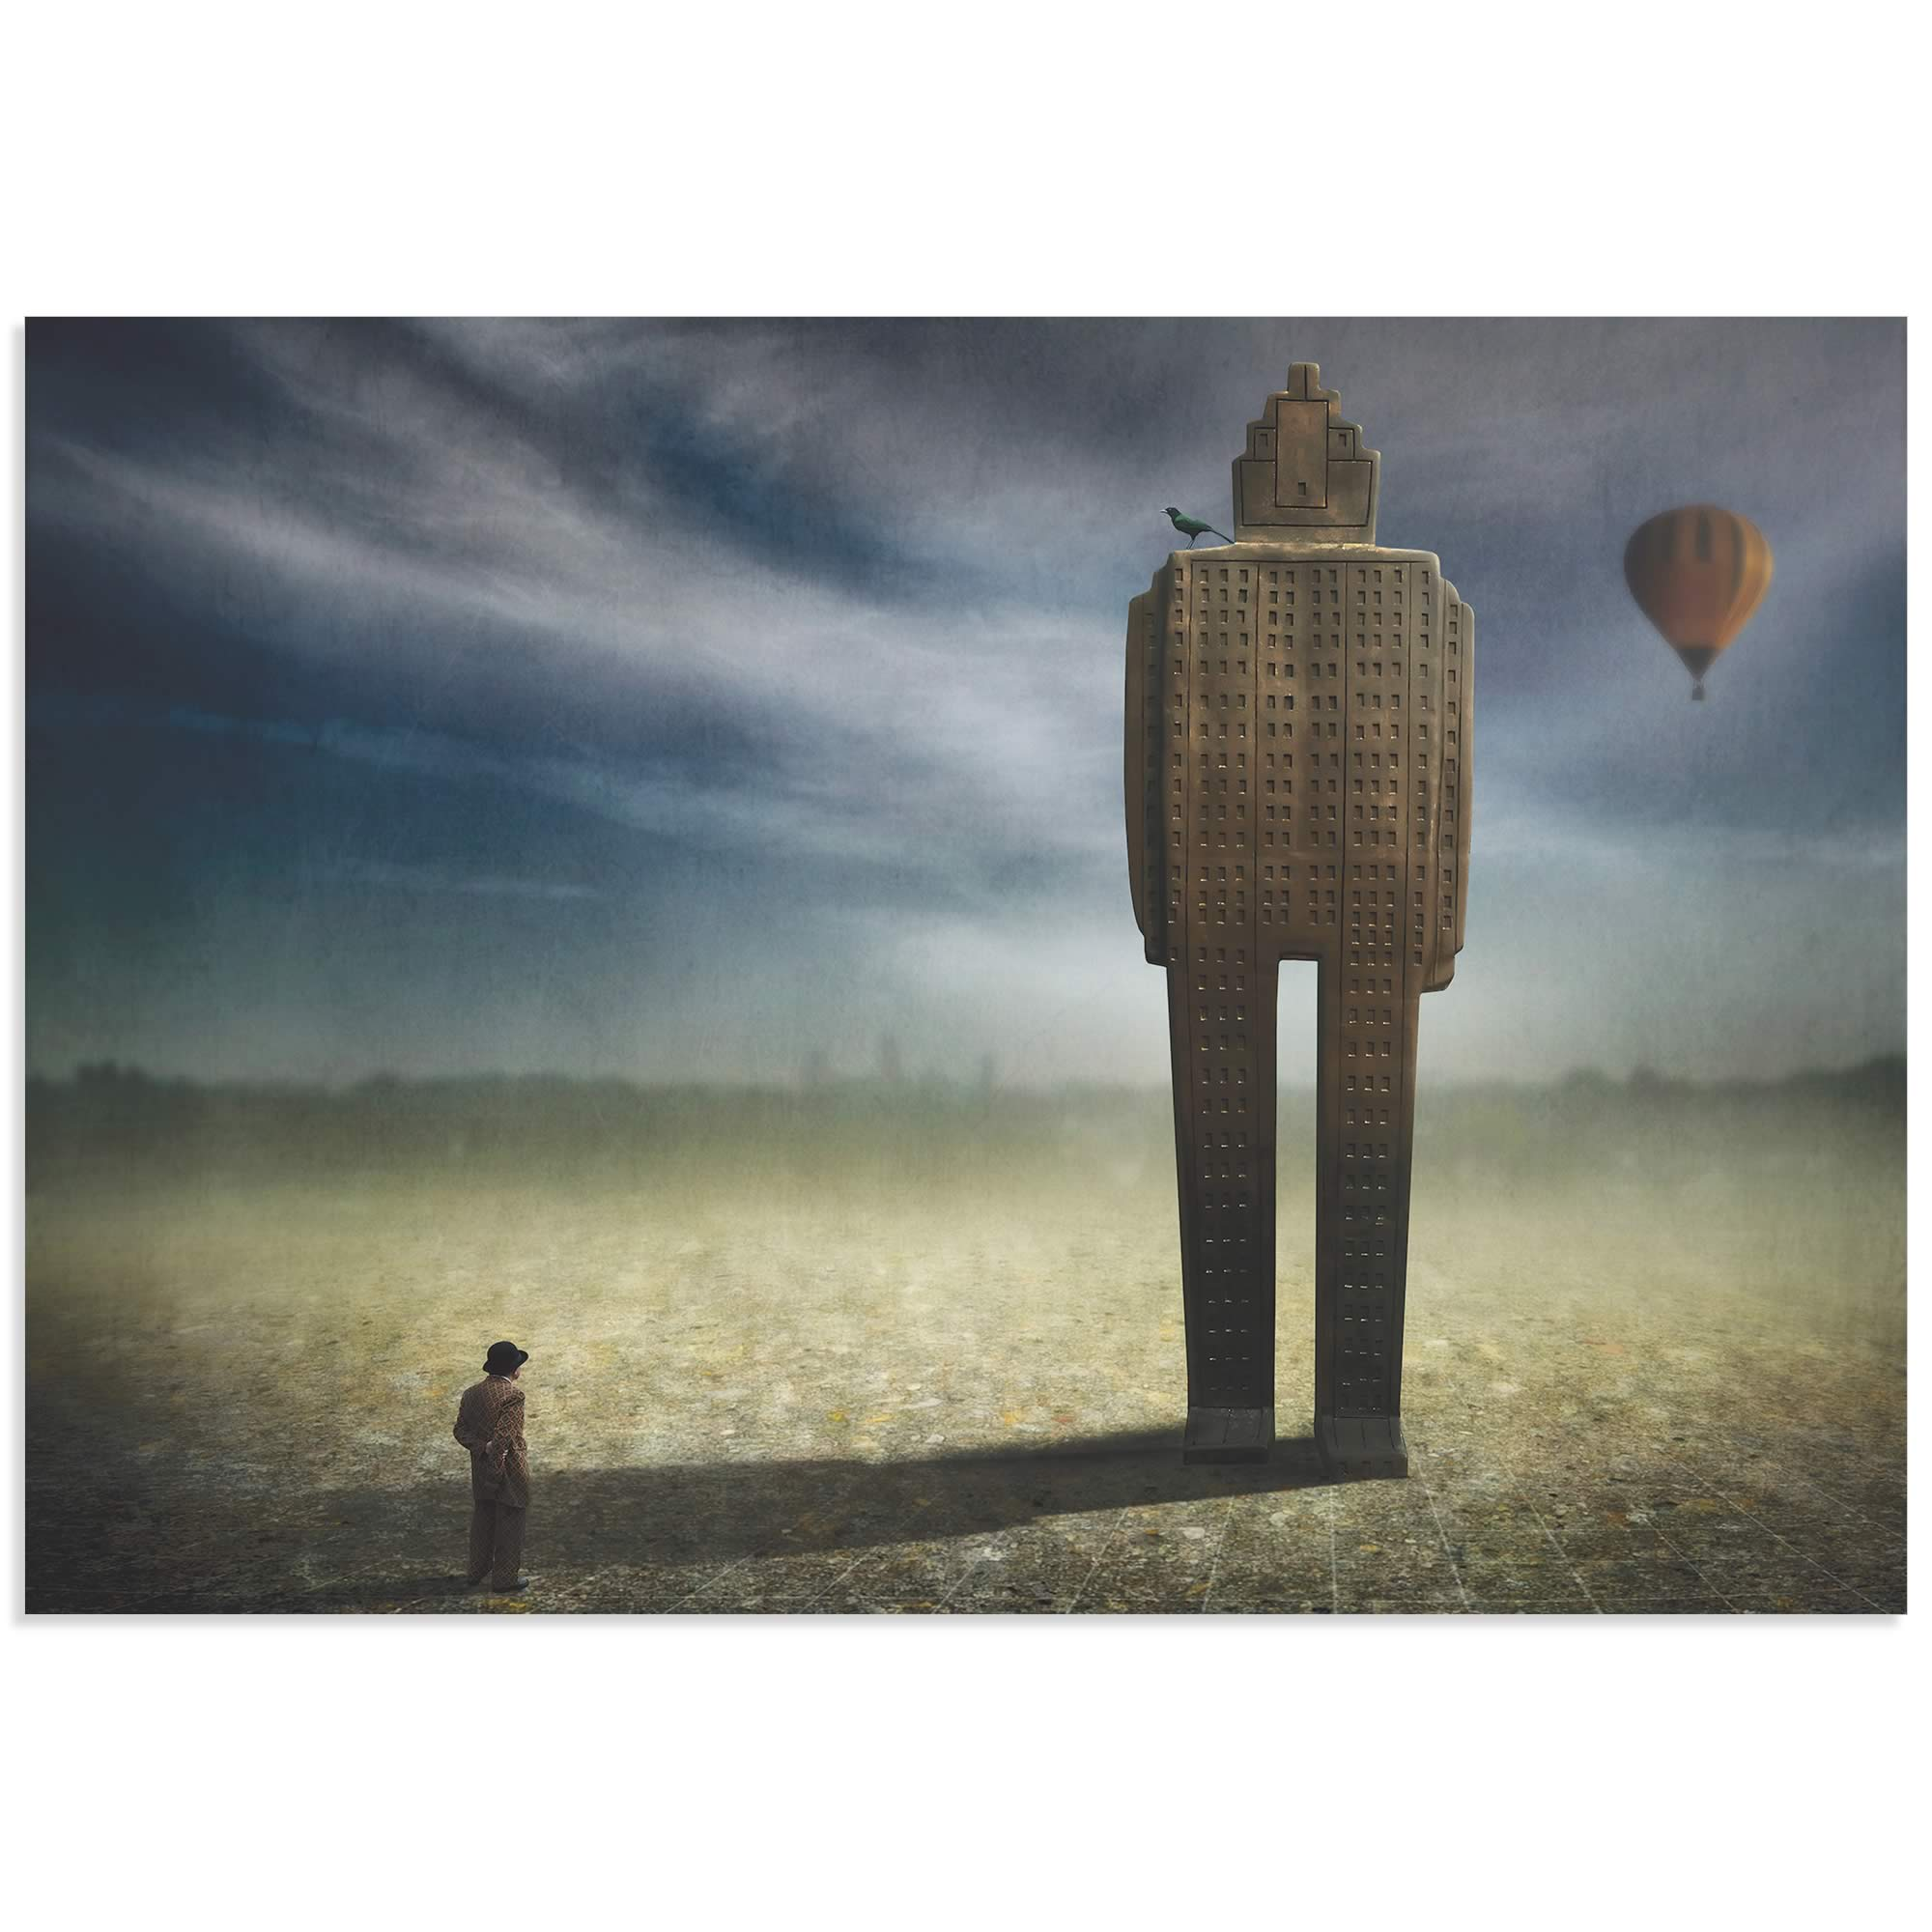 Big Town Exodus by Ben Goossens - Surreal Cityscape Art on Metal or Acrylic